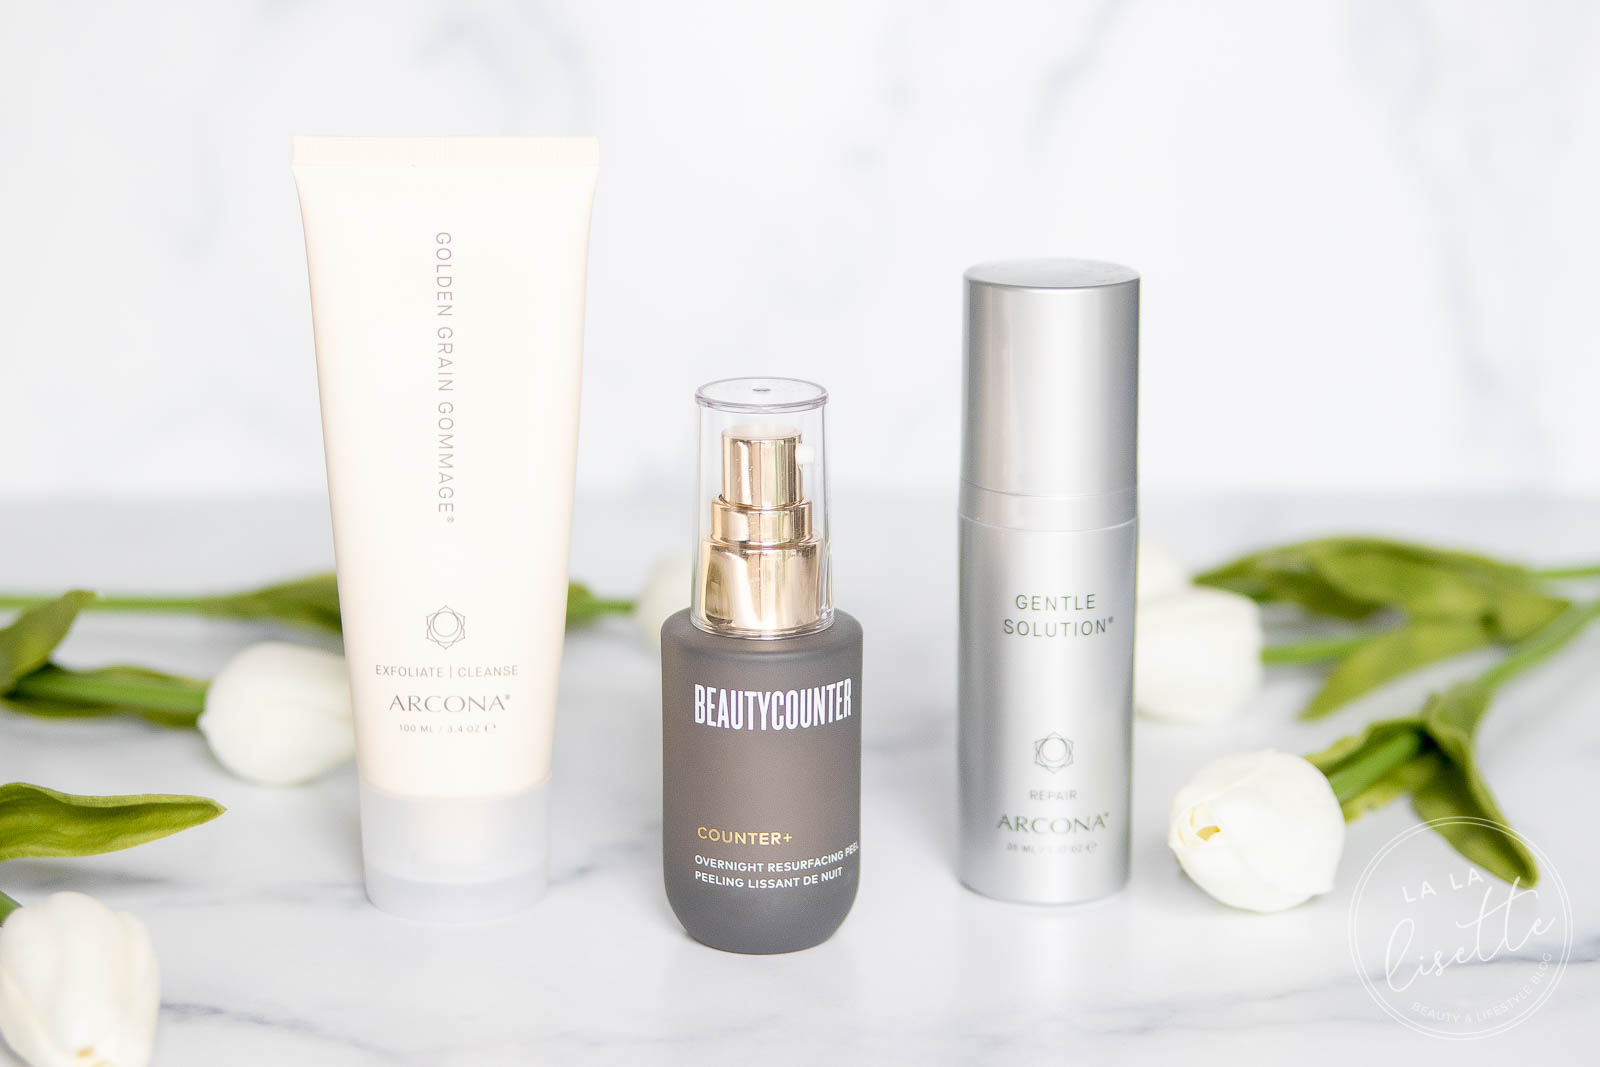 Arcona Golden Grain Gommage, Beautycounter Overnight Resurfacing Peel, and Arcona Gentle Solution